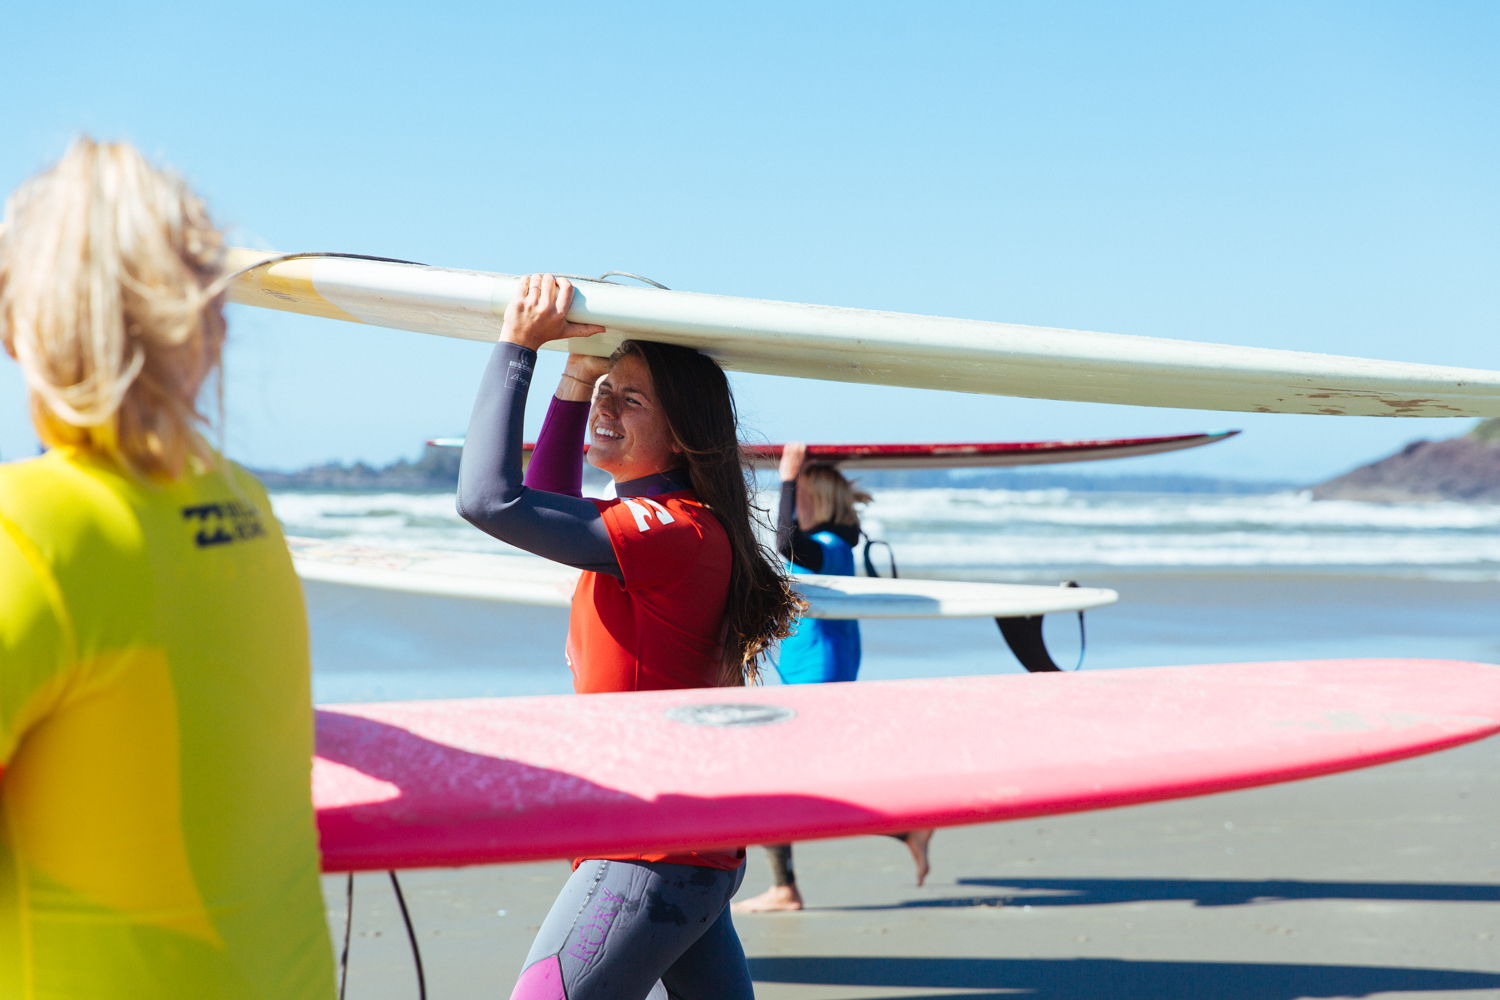 women's surf film festival Tofino is a Place